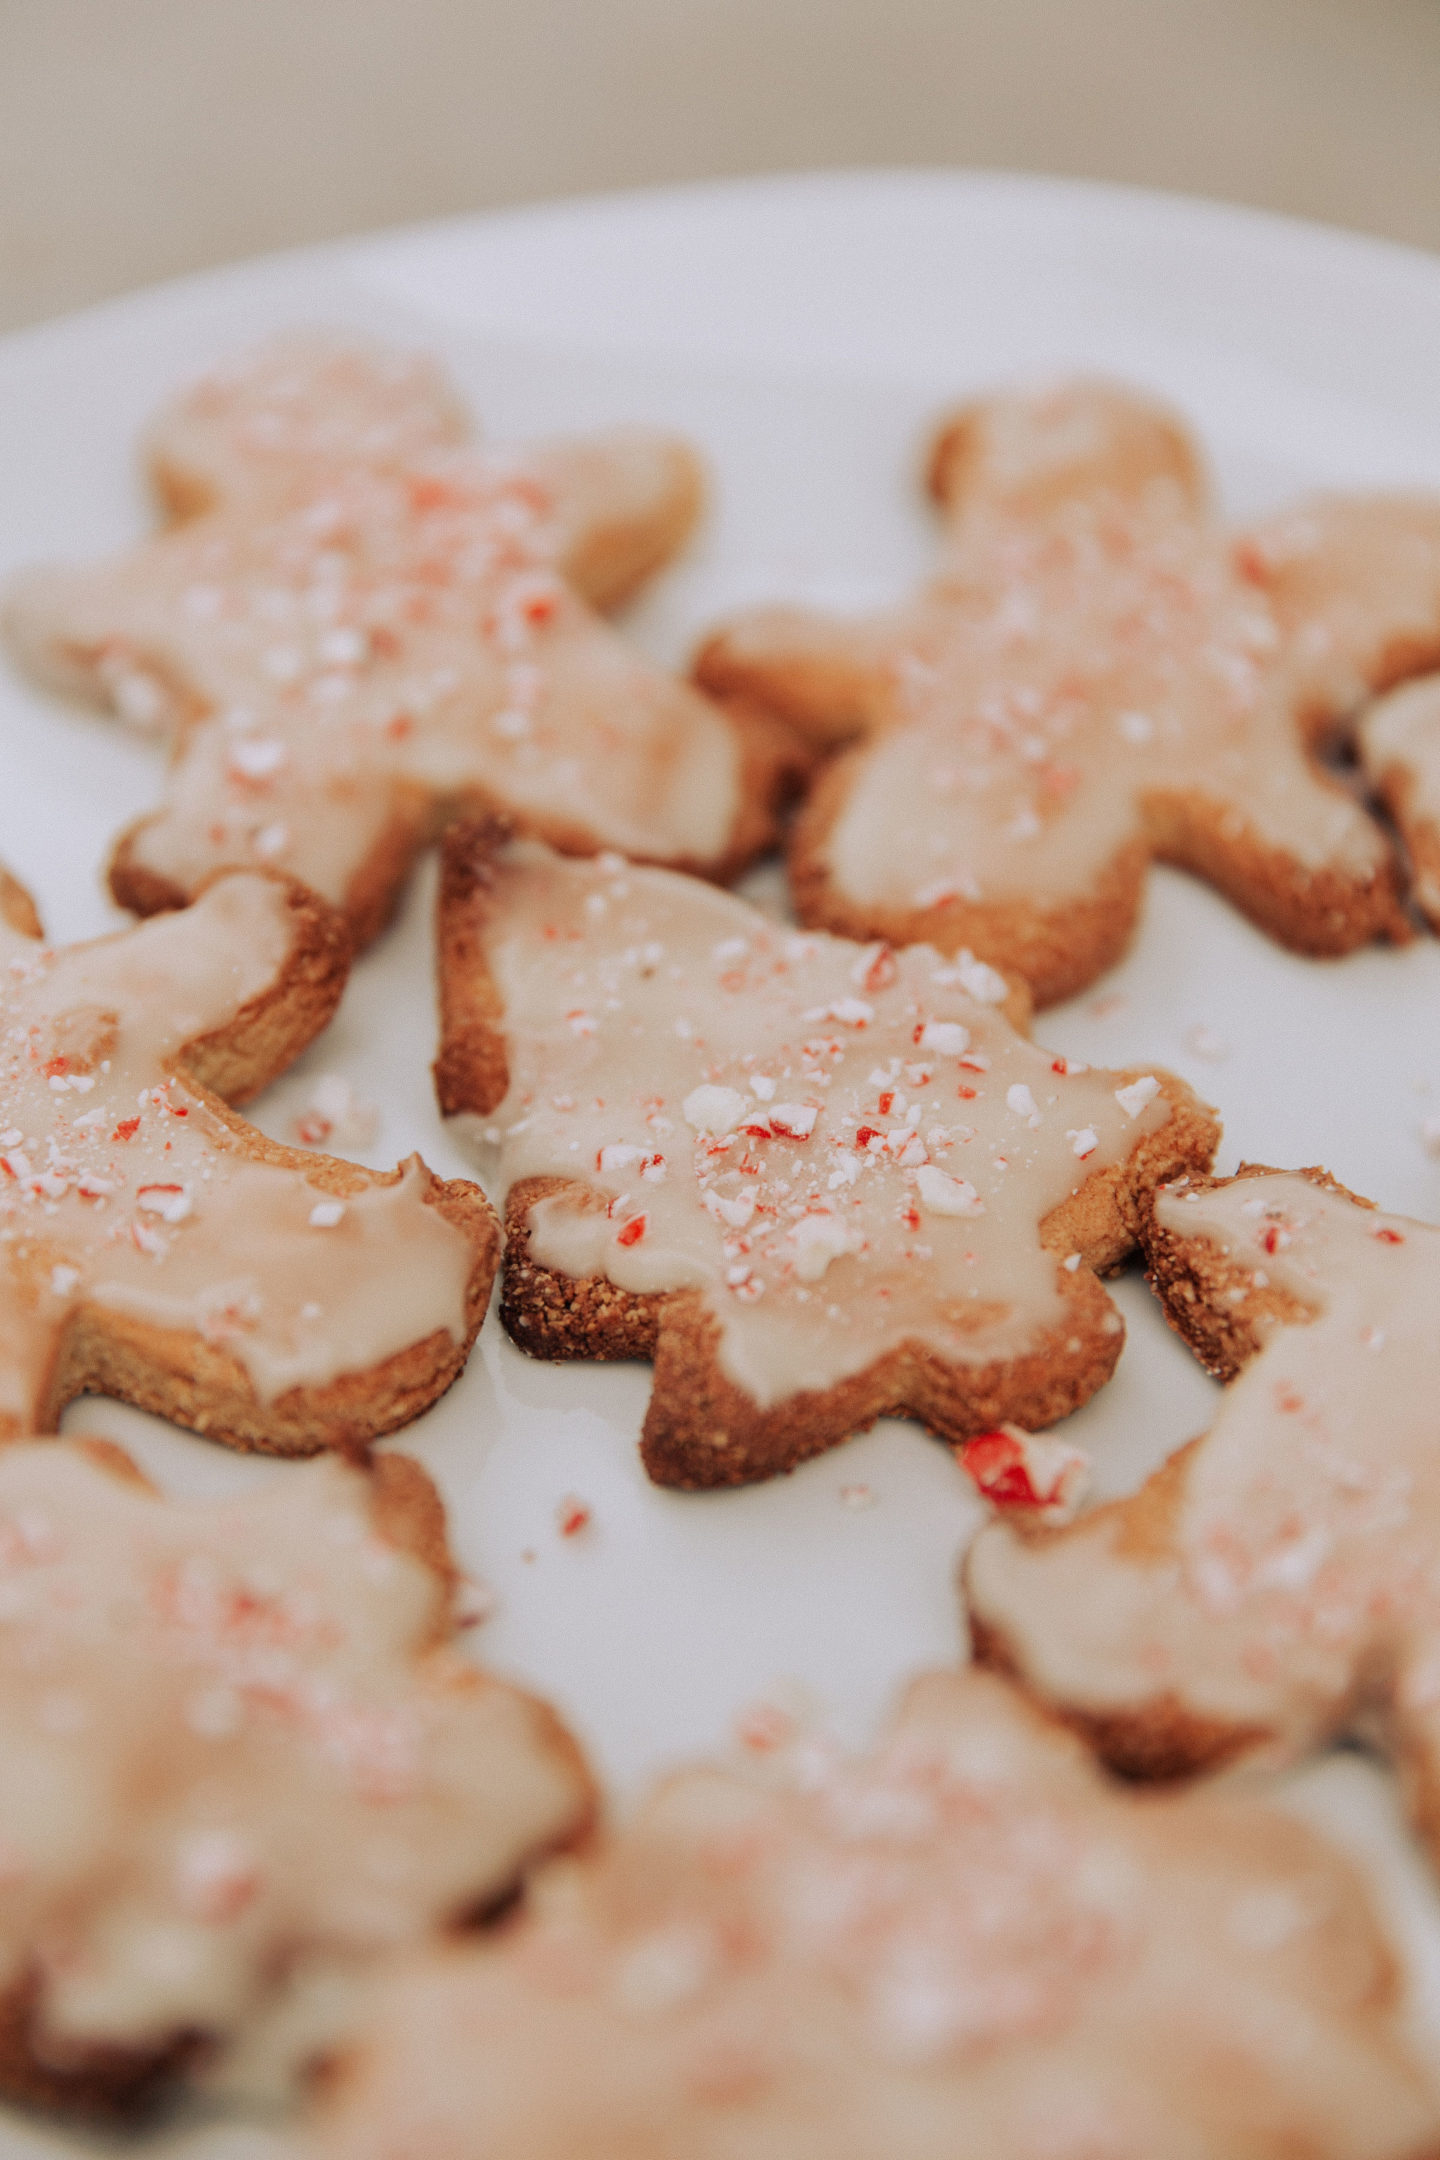 Call Me Lore_Easy Dairy-Free and Gluten-Free Christmas Sugar Cookie Recipe